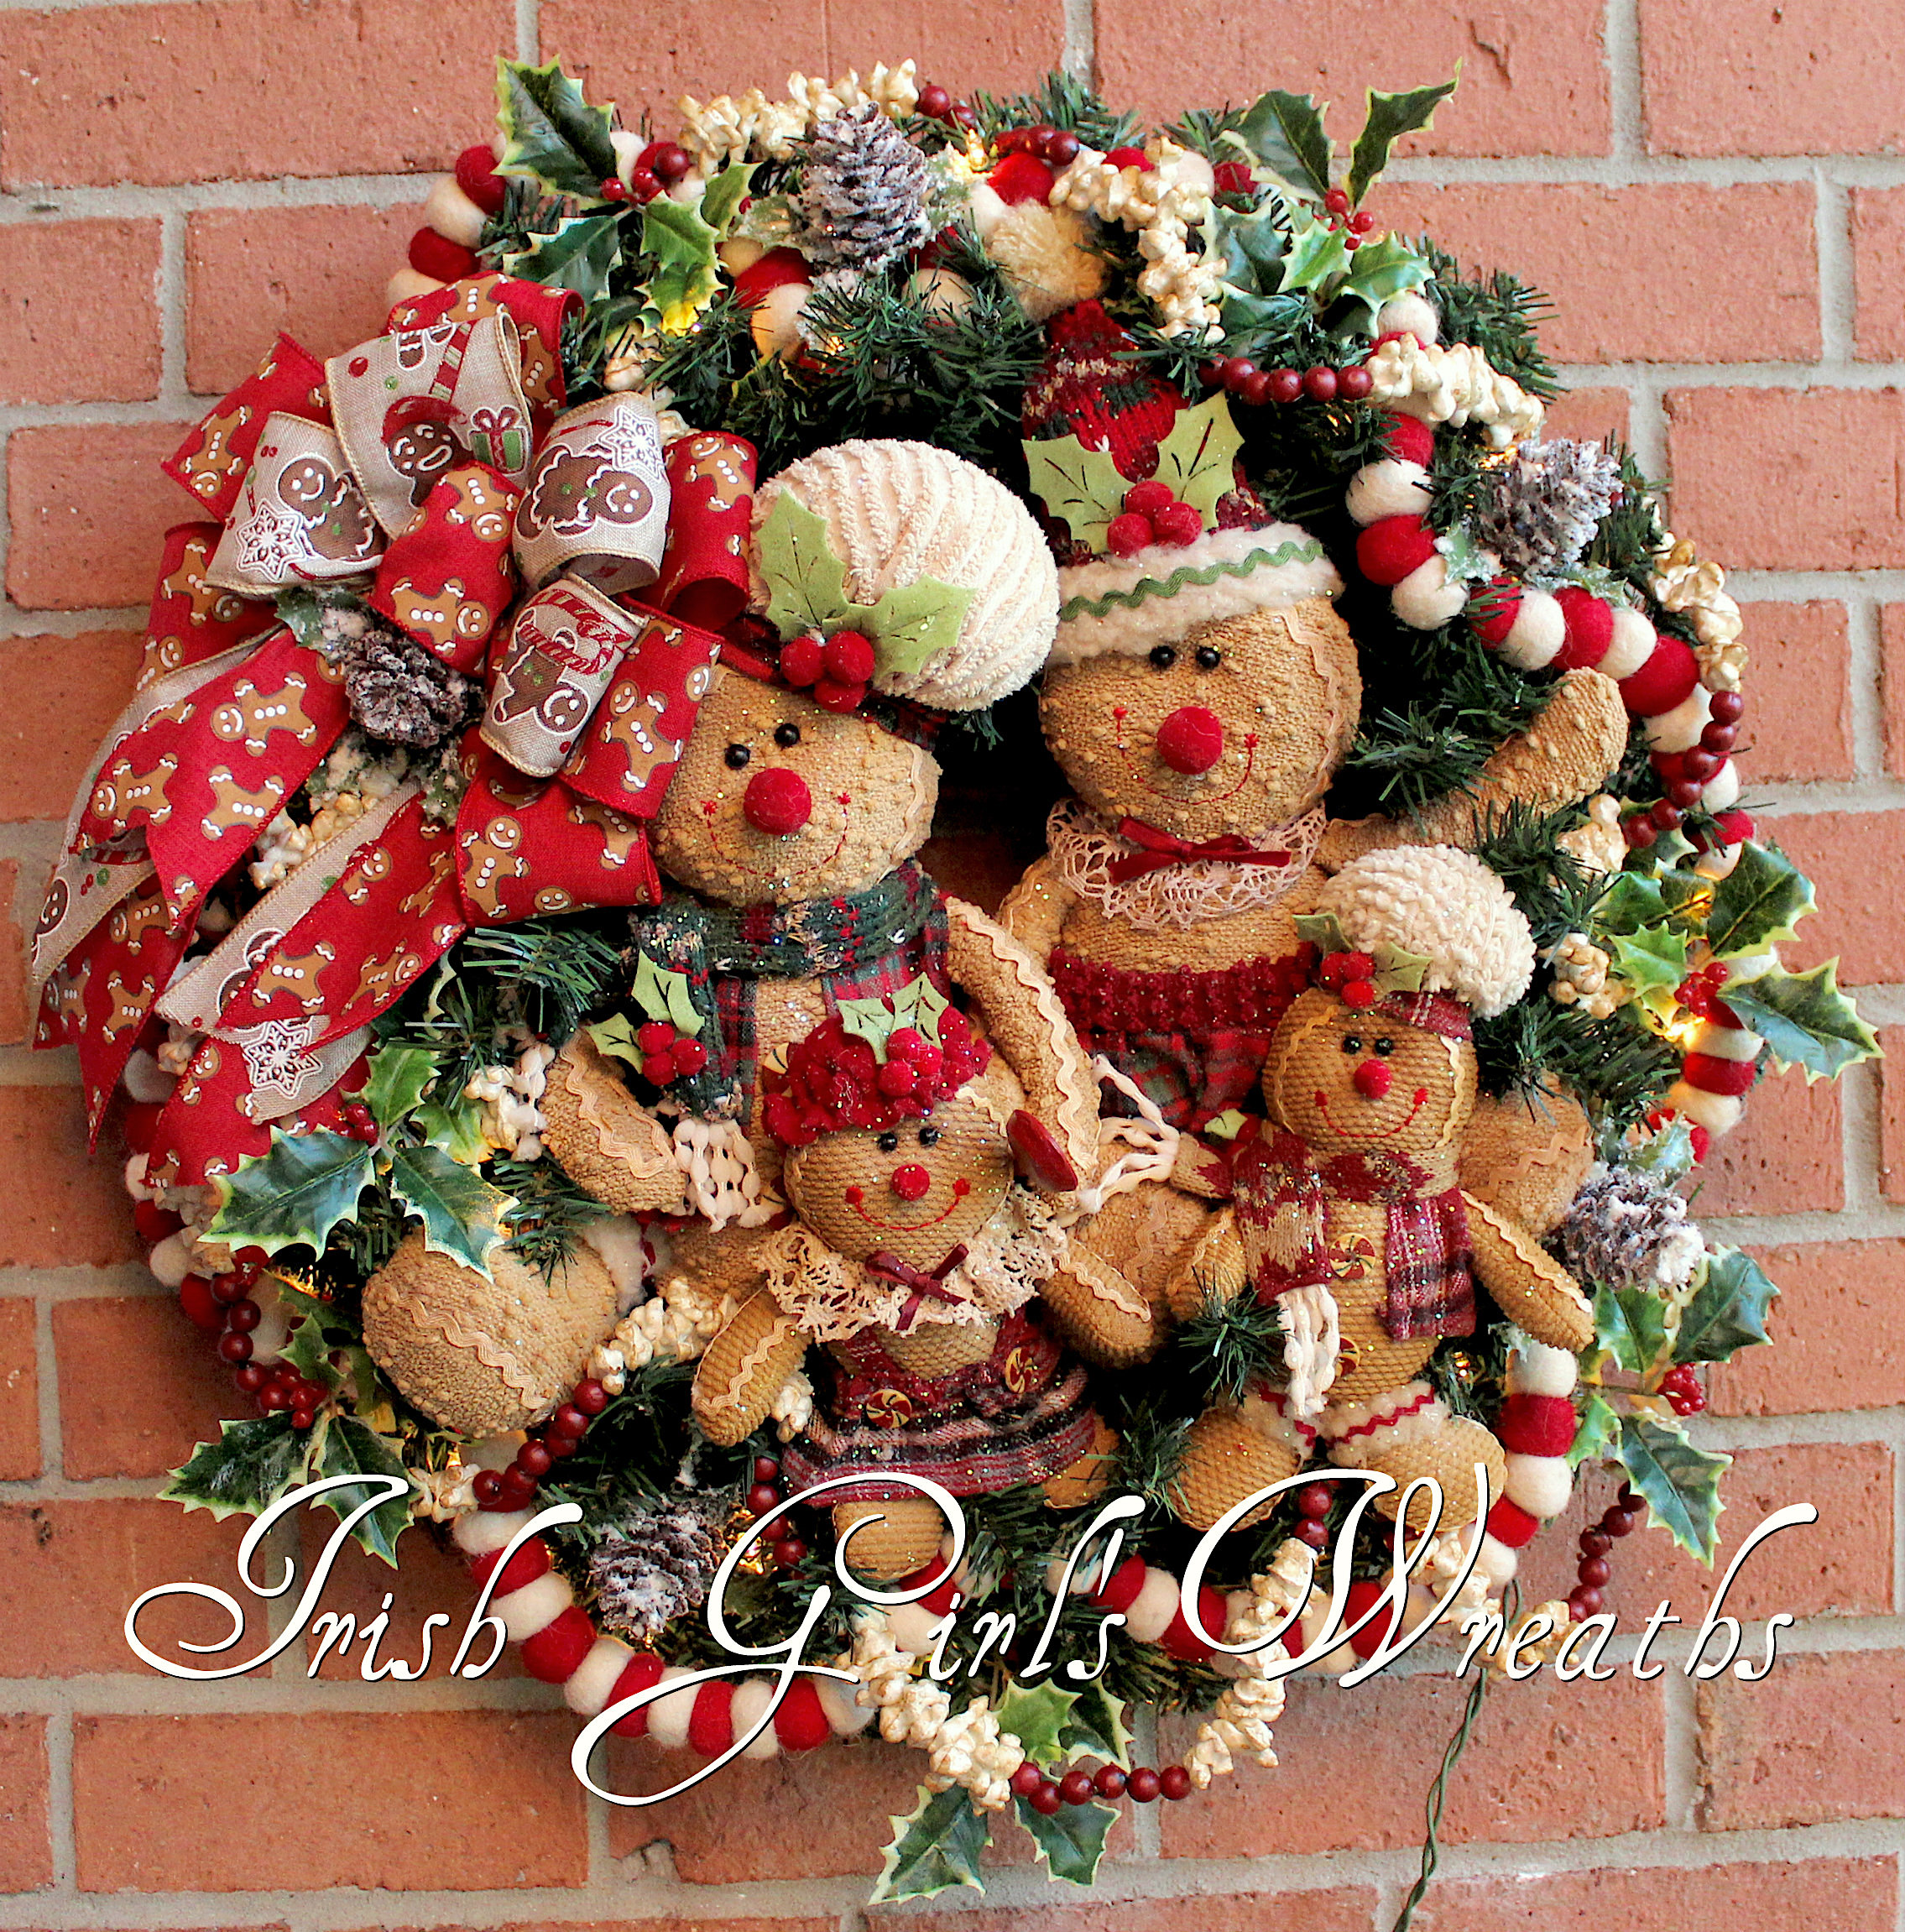 Gingerbread Family Rustic Christmas Wreath with lights